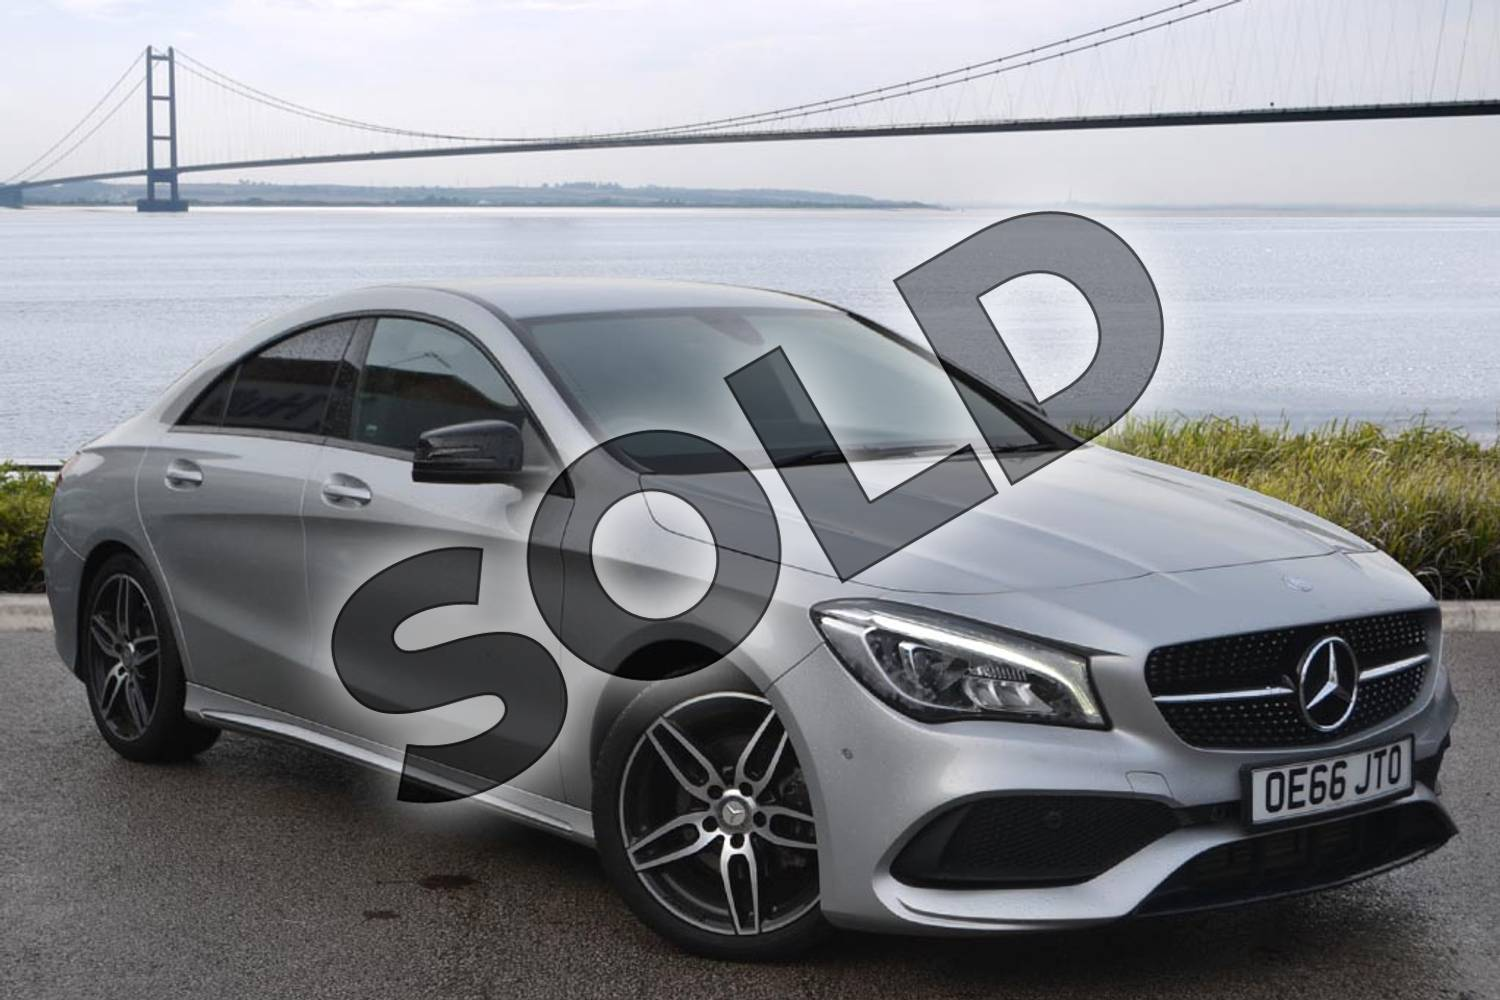 2017 Mercedes-Benz CLA Diesel Coupe CLA 200d AMG Line 4dr in polar silver metallic at Mercedes-Benz of Boston